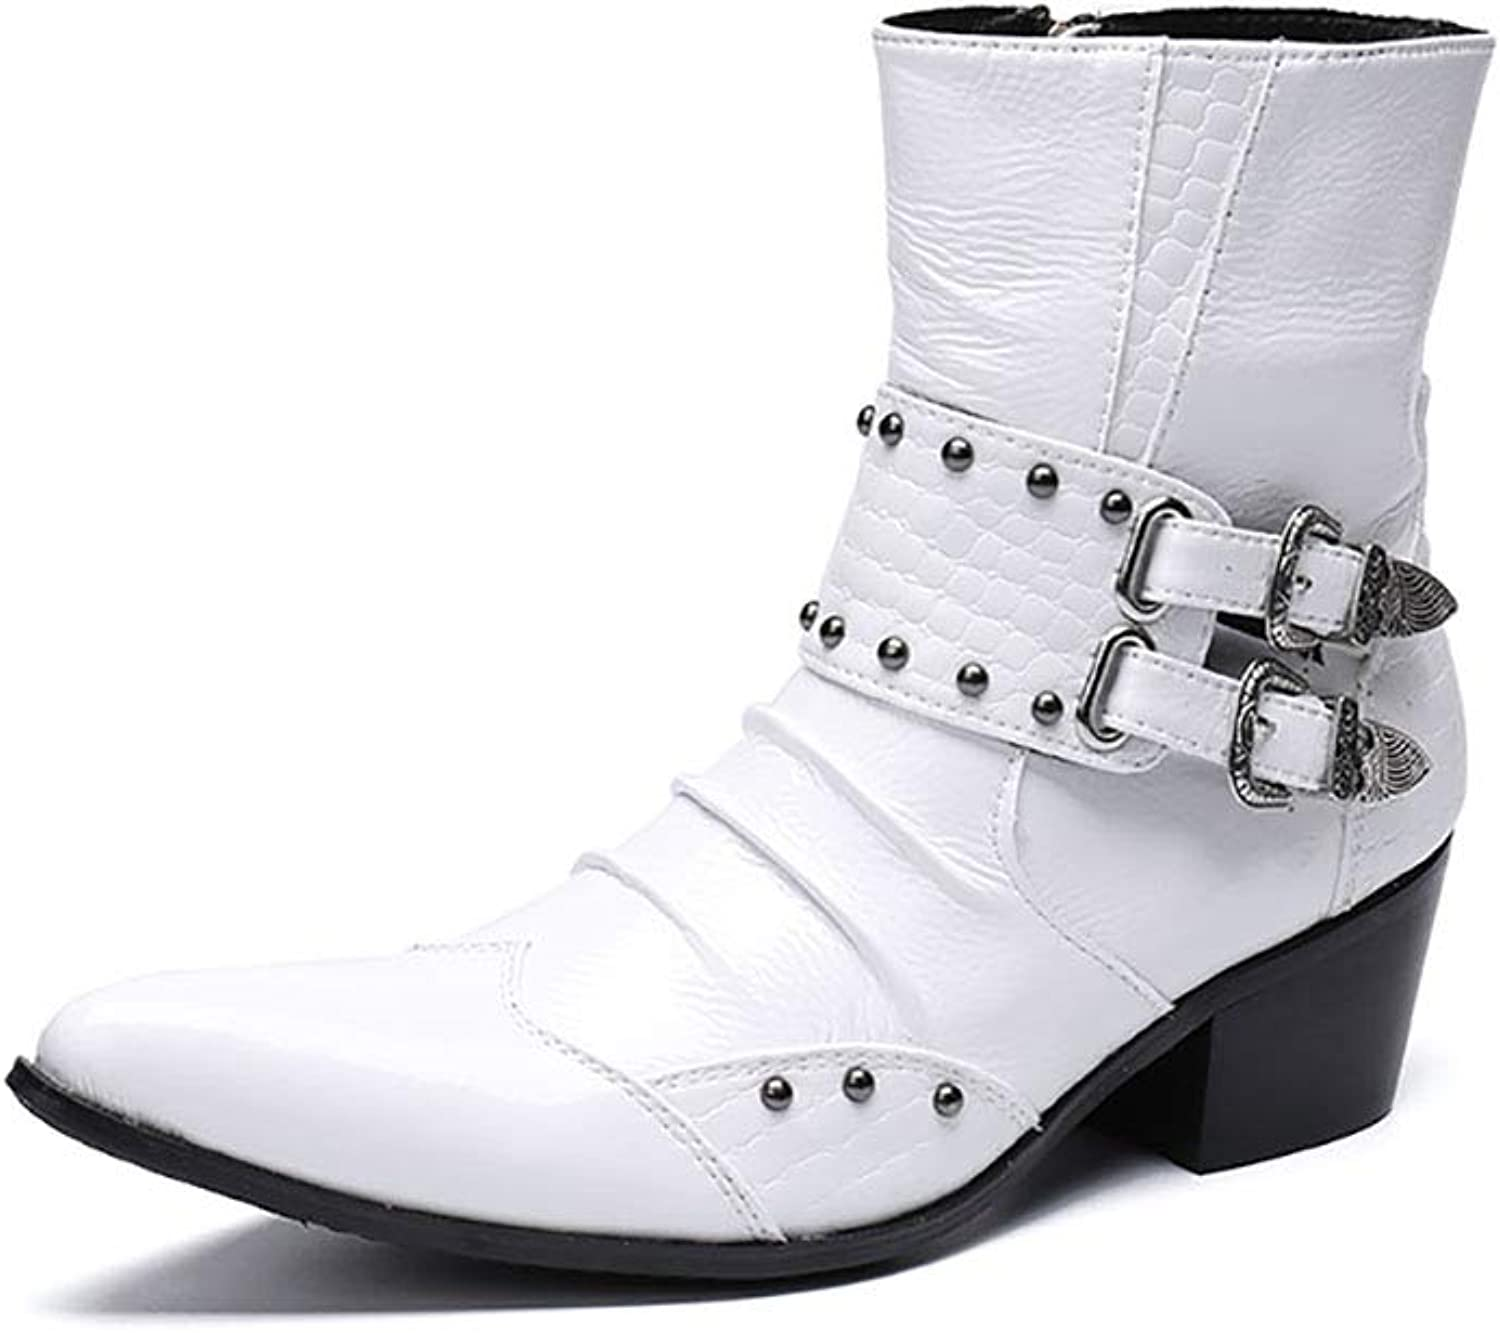 Men's Boots Fashion Punk Pointed Leather shoes Short Martin Boots Personalized Western Cowboy Boots Rock Singer Dress Wedding shoes for Formal,Wedding,Casual,Office,Party,White,Size 37 to 46